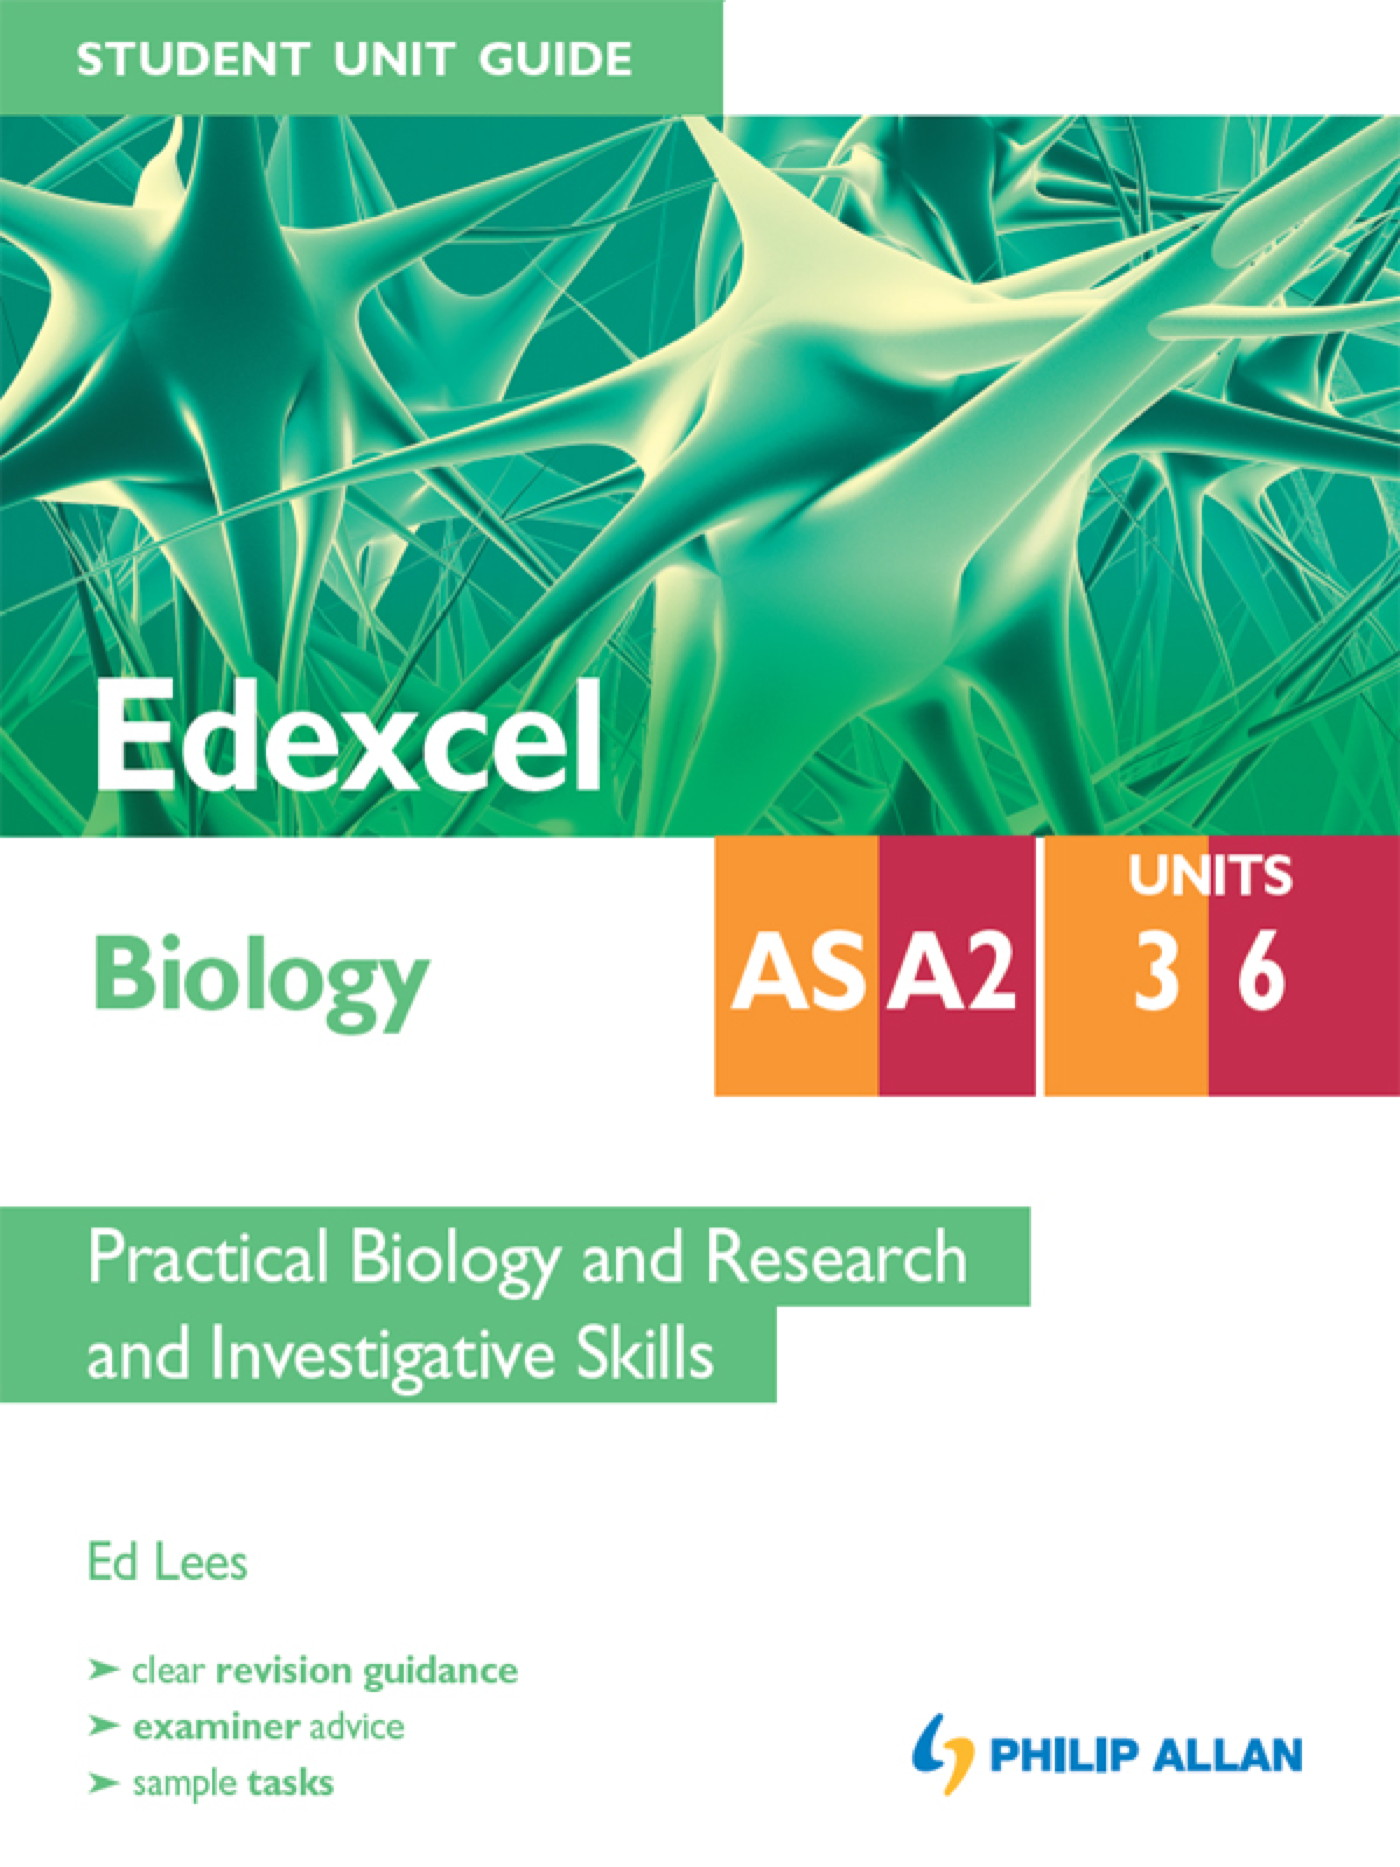 A2 biology coursework edexcel research and rationale